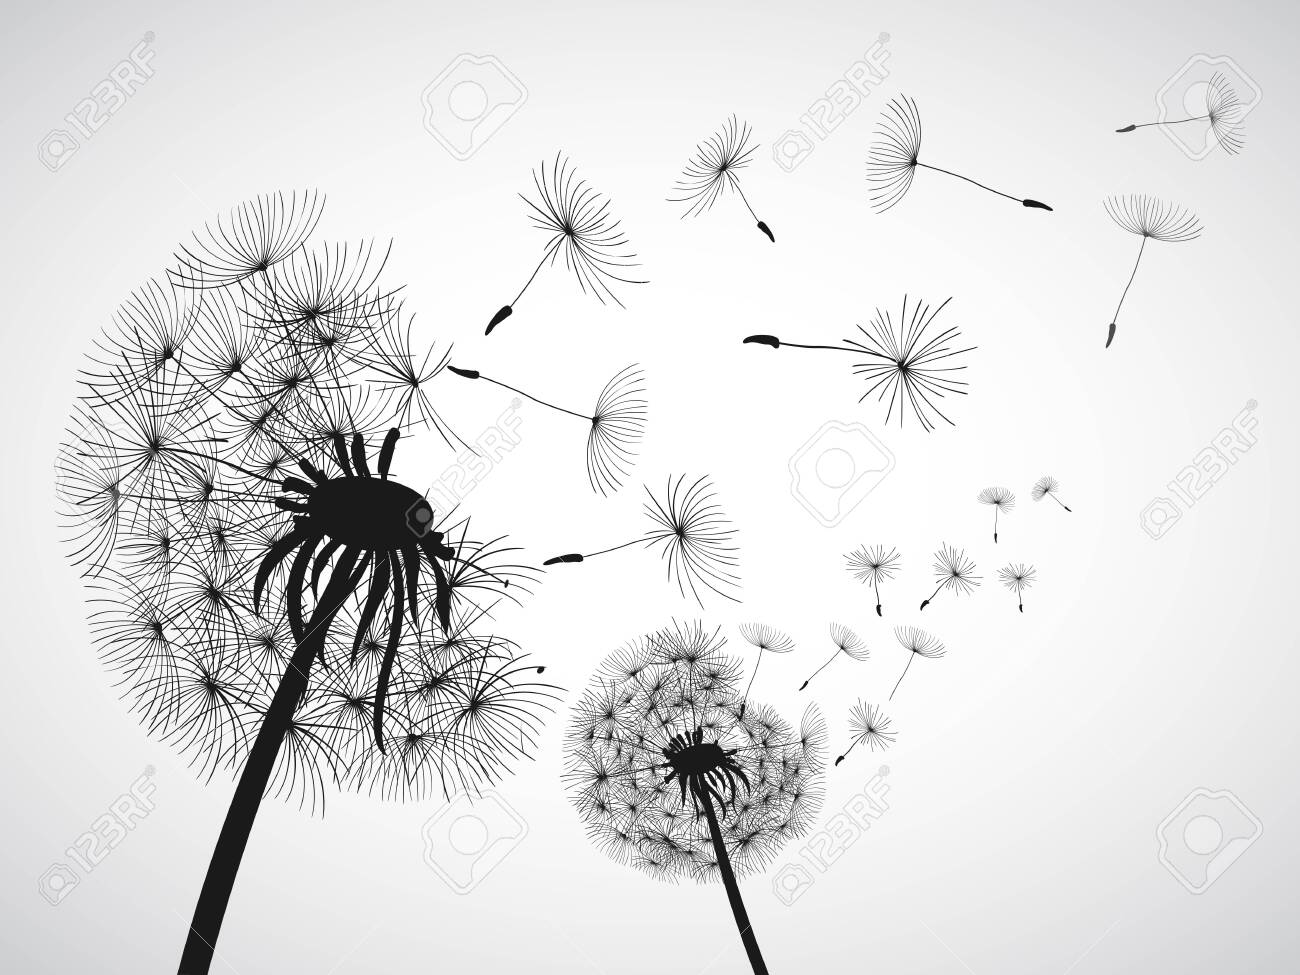 Abstract black dandelion, dandelion with flying seeds - for stock vector - 158147815